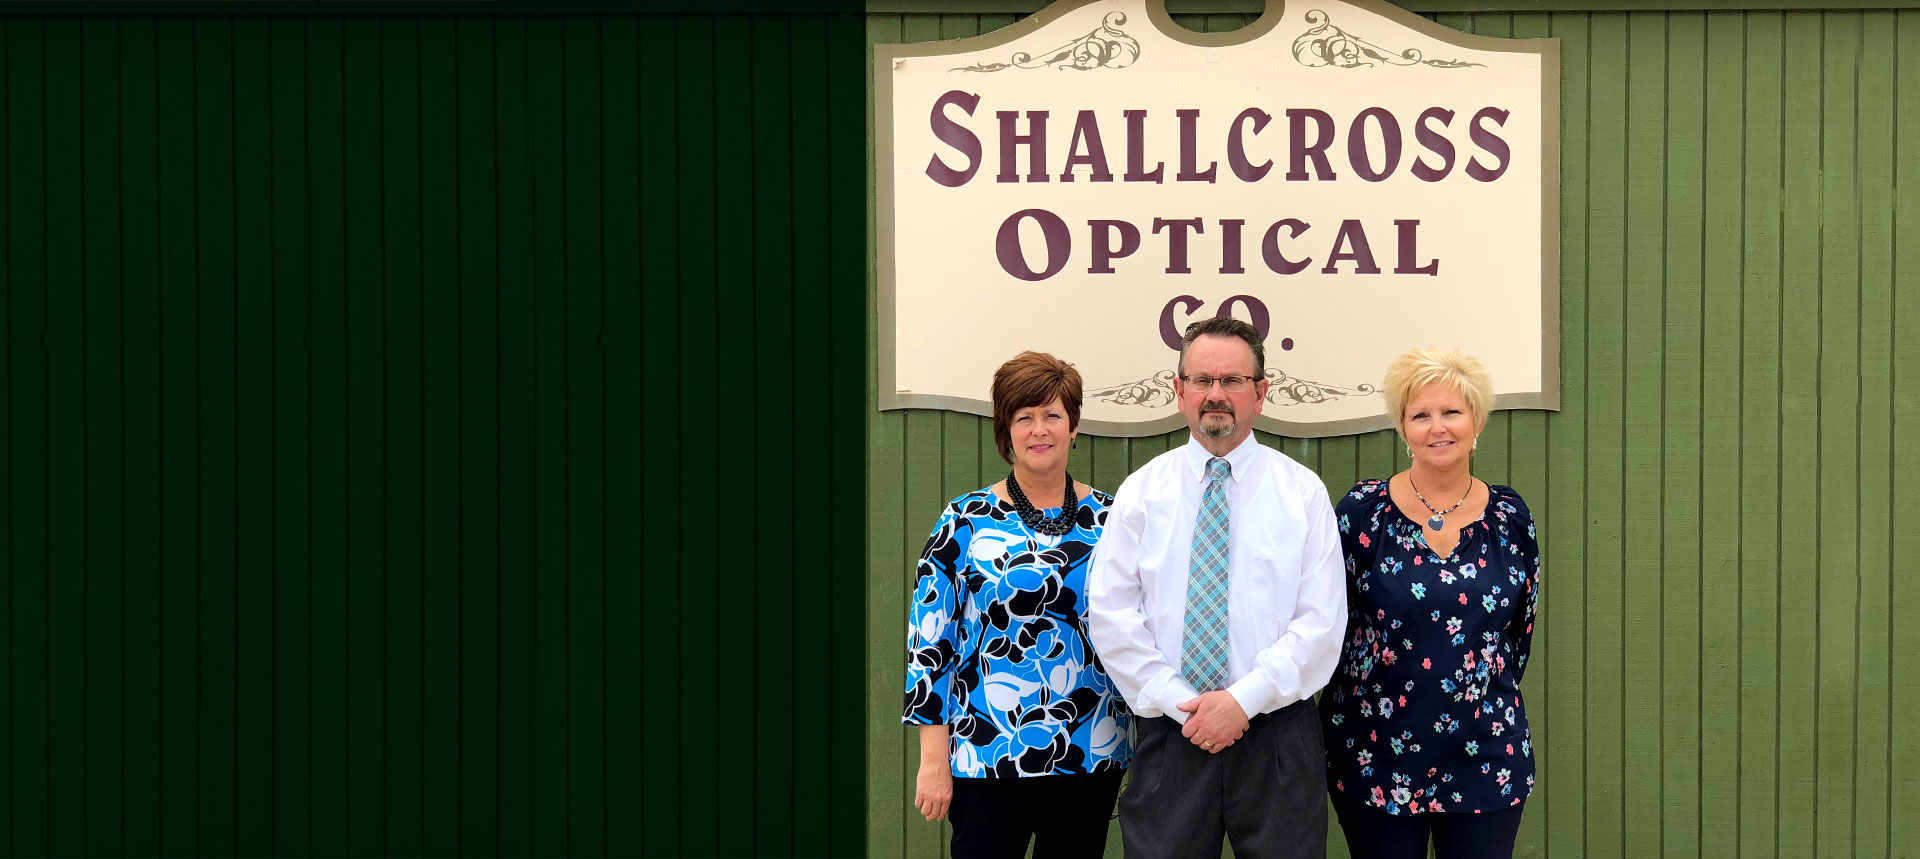 The team in front of Shallcross sign